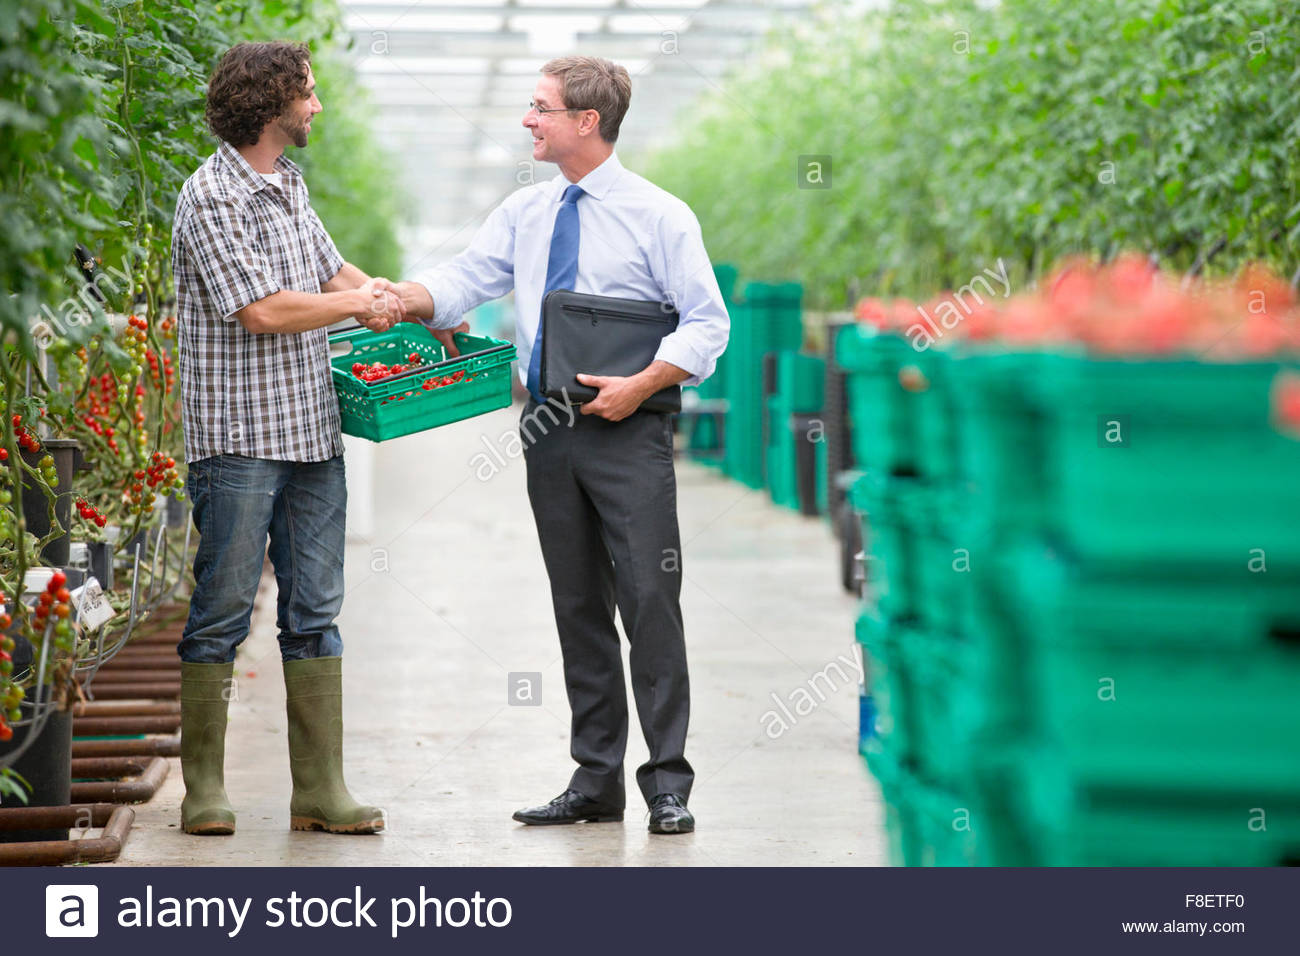 Businessman and grower with crate of tomatoes handshaking in greenhouse - Stock Image